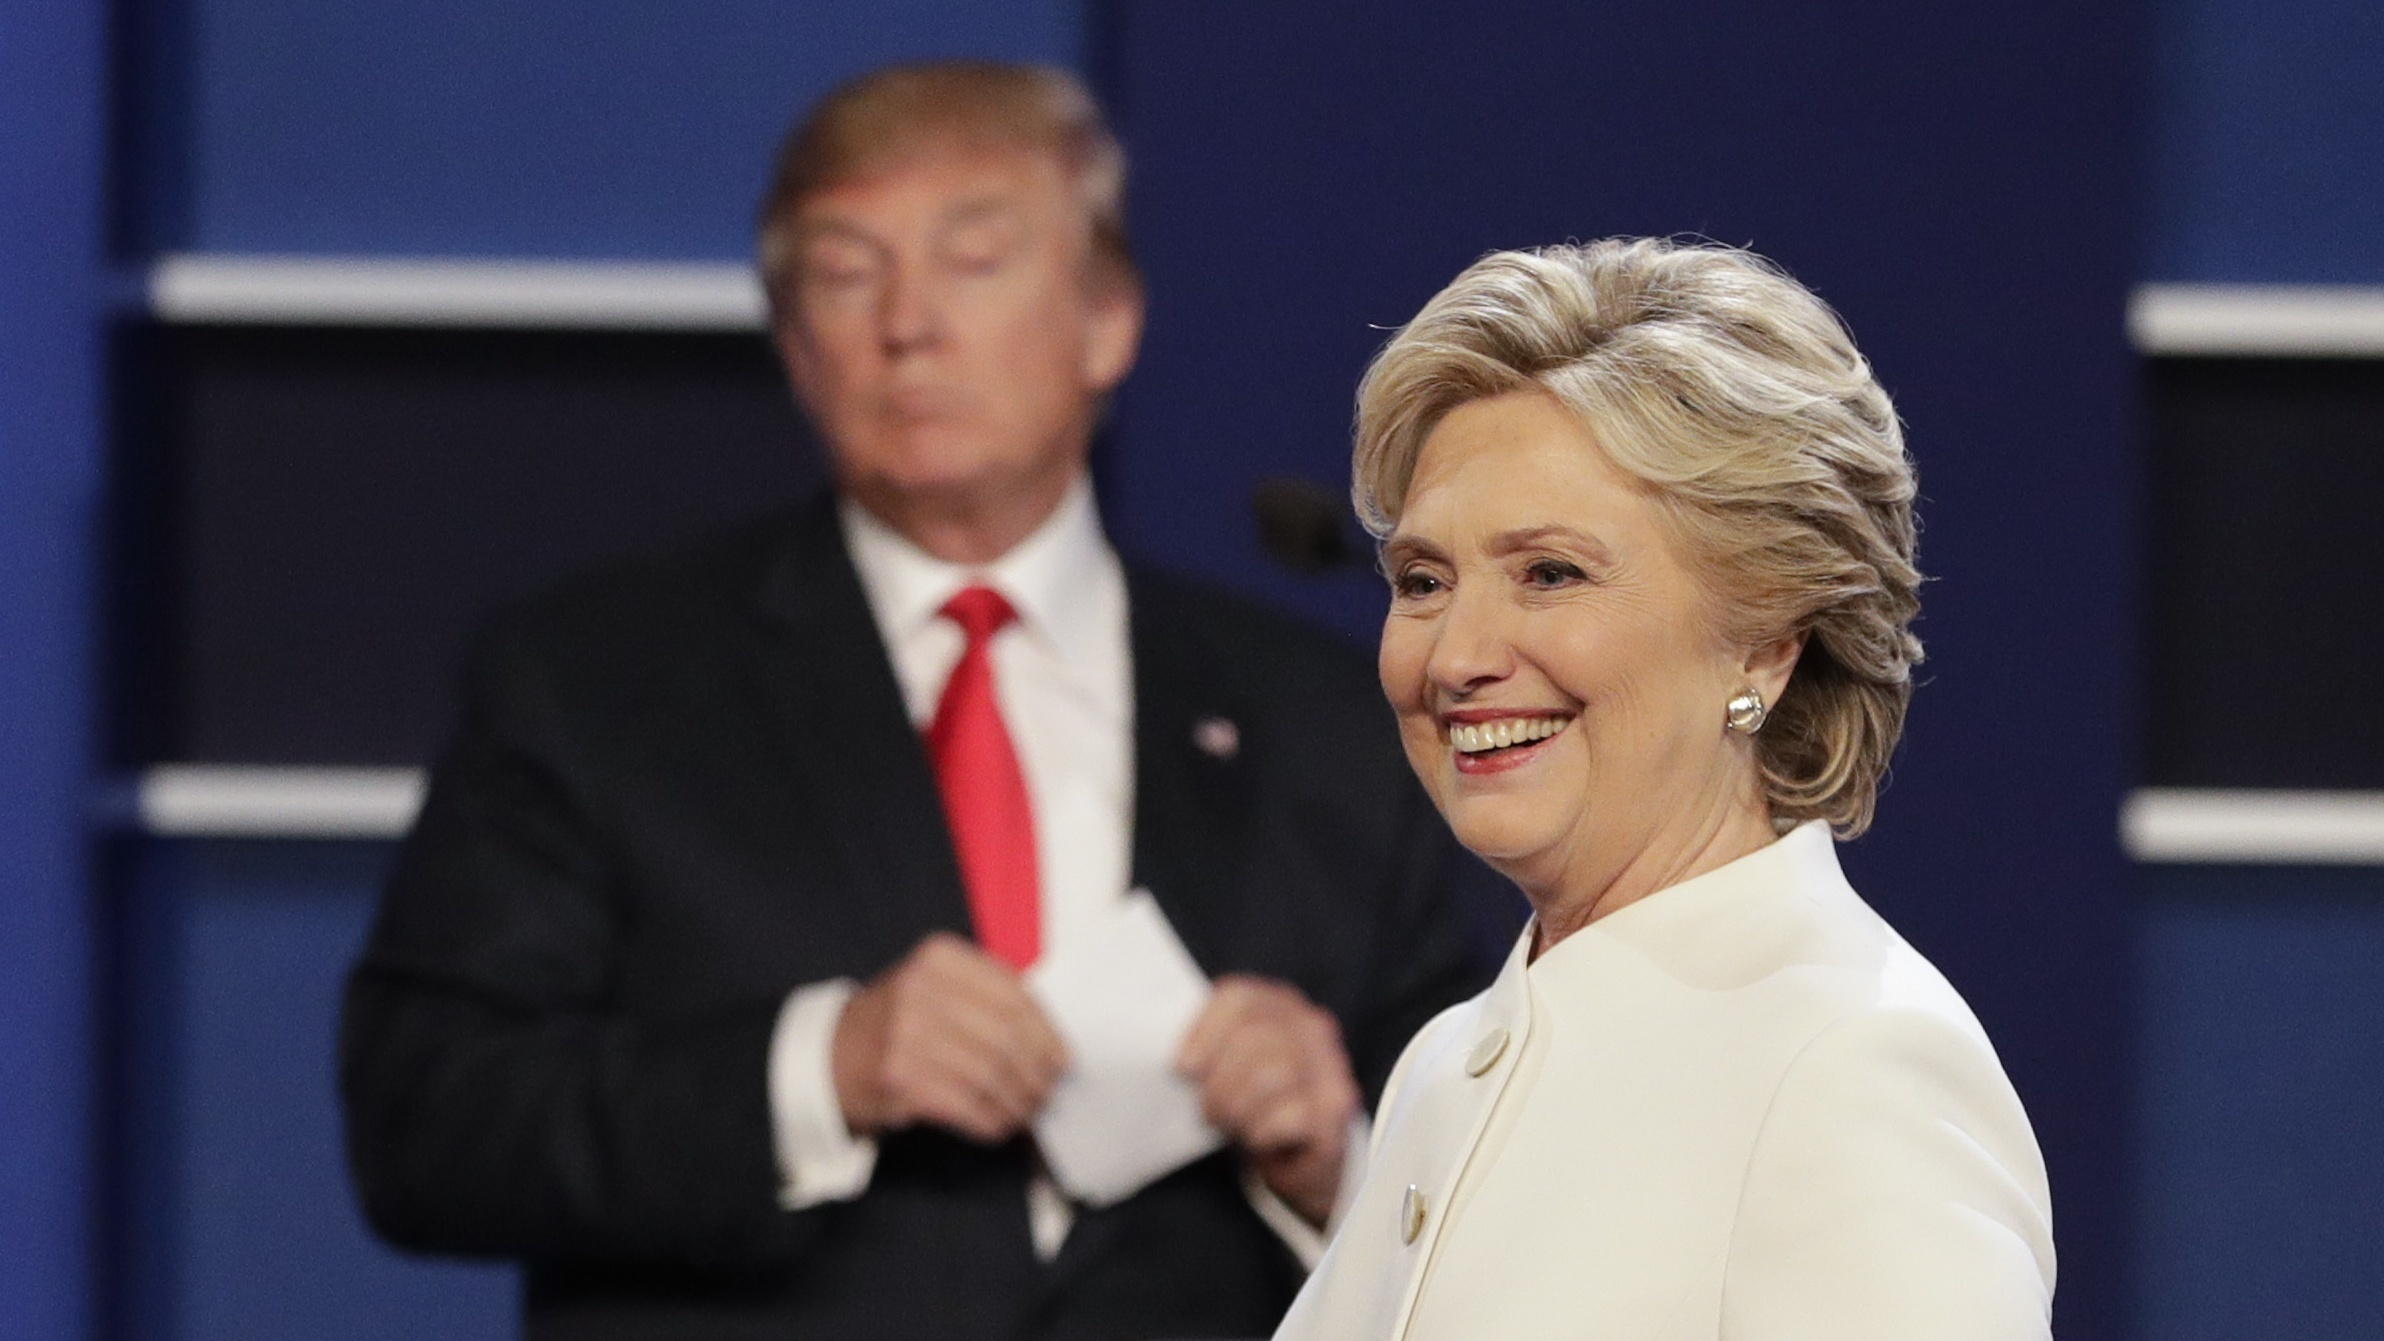 The country will soon decide whether Donald Trump or Hillary Clinton will be the 45th president of the United States.